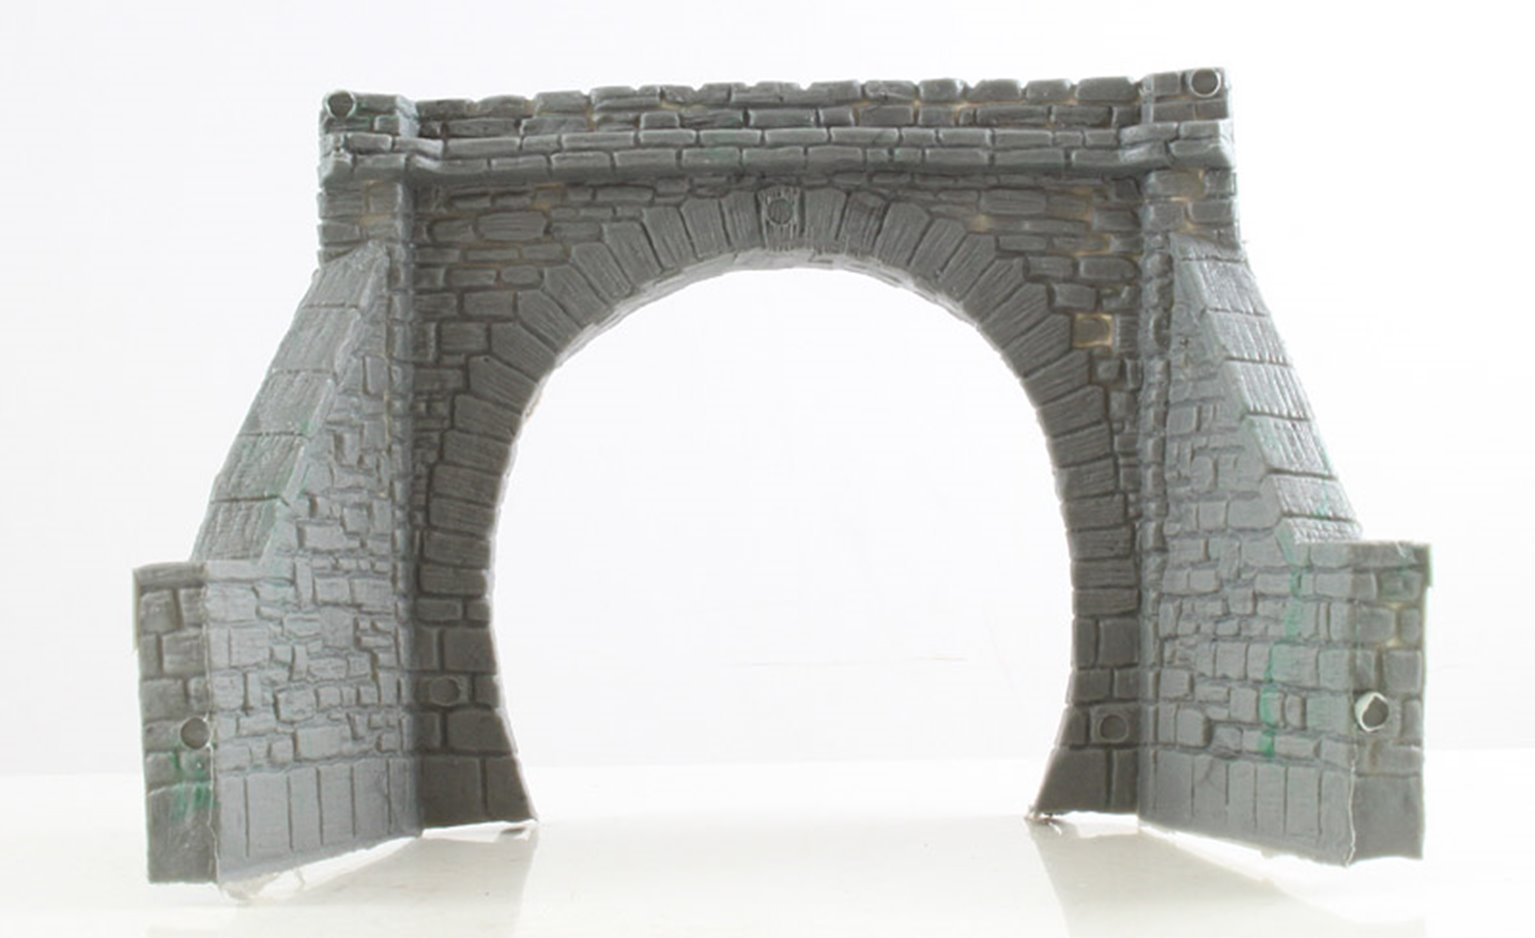 Modelscene 5045 Tunnel Portal, single track